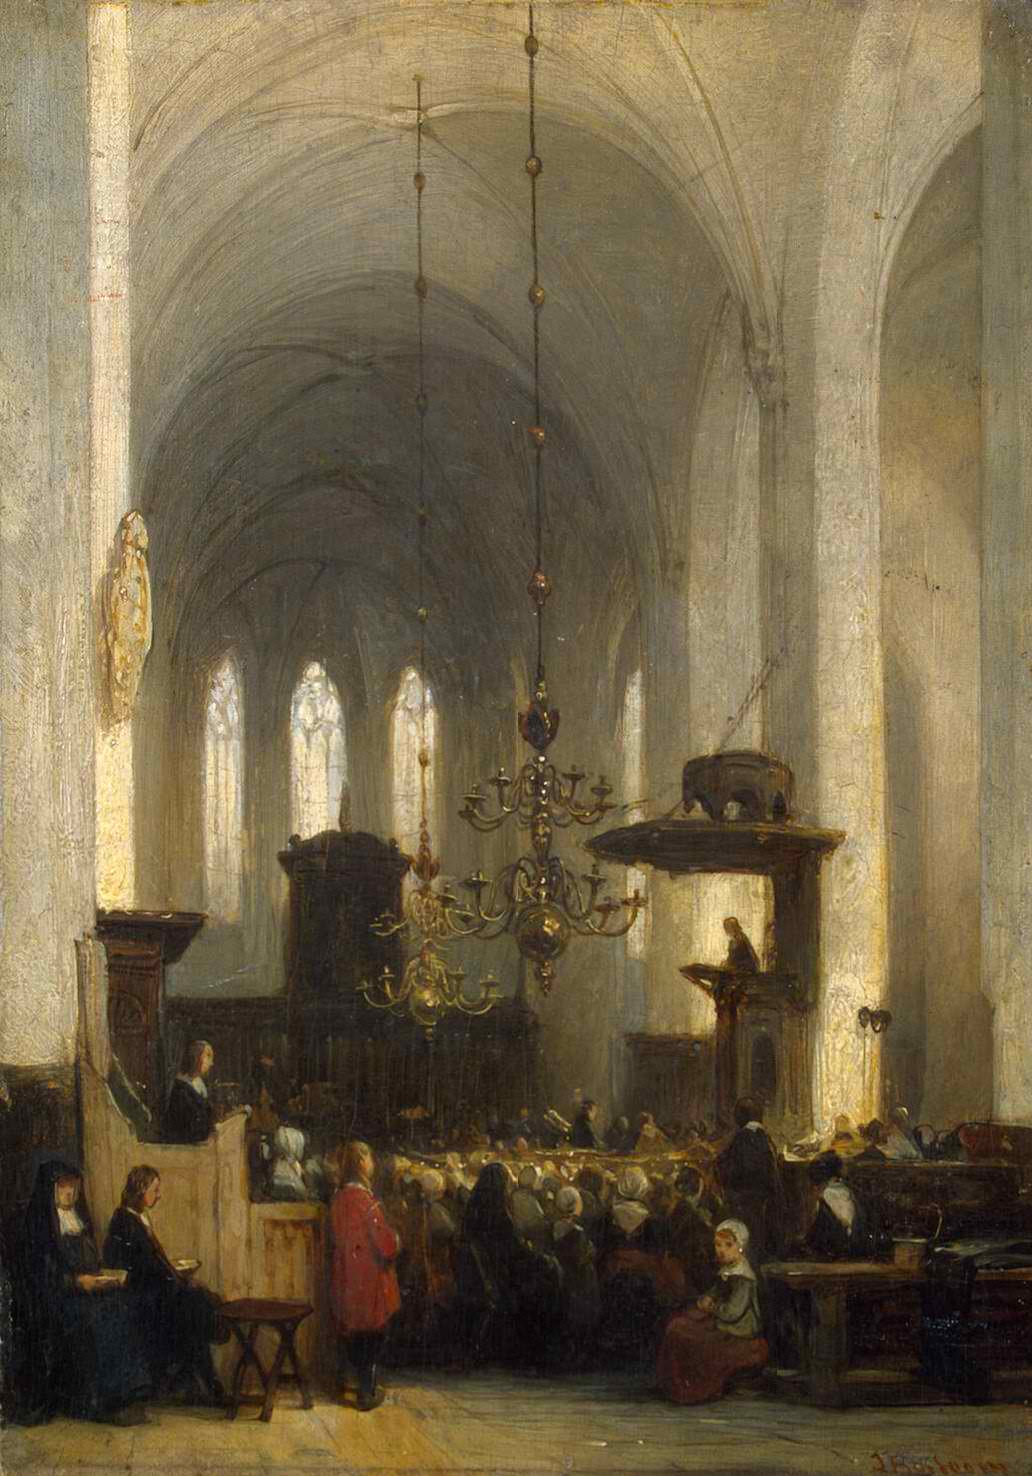 In the Church by Johannes Bosboom, between 1840 and 1846